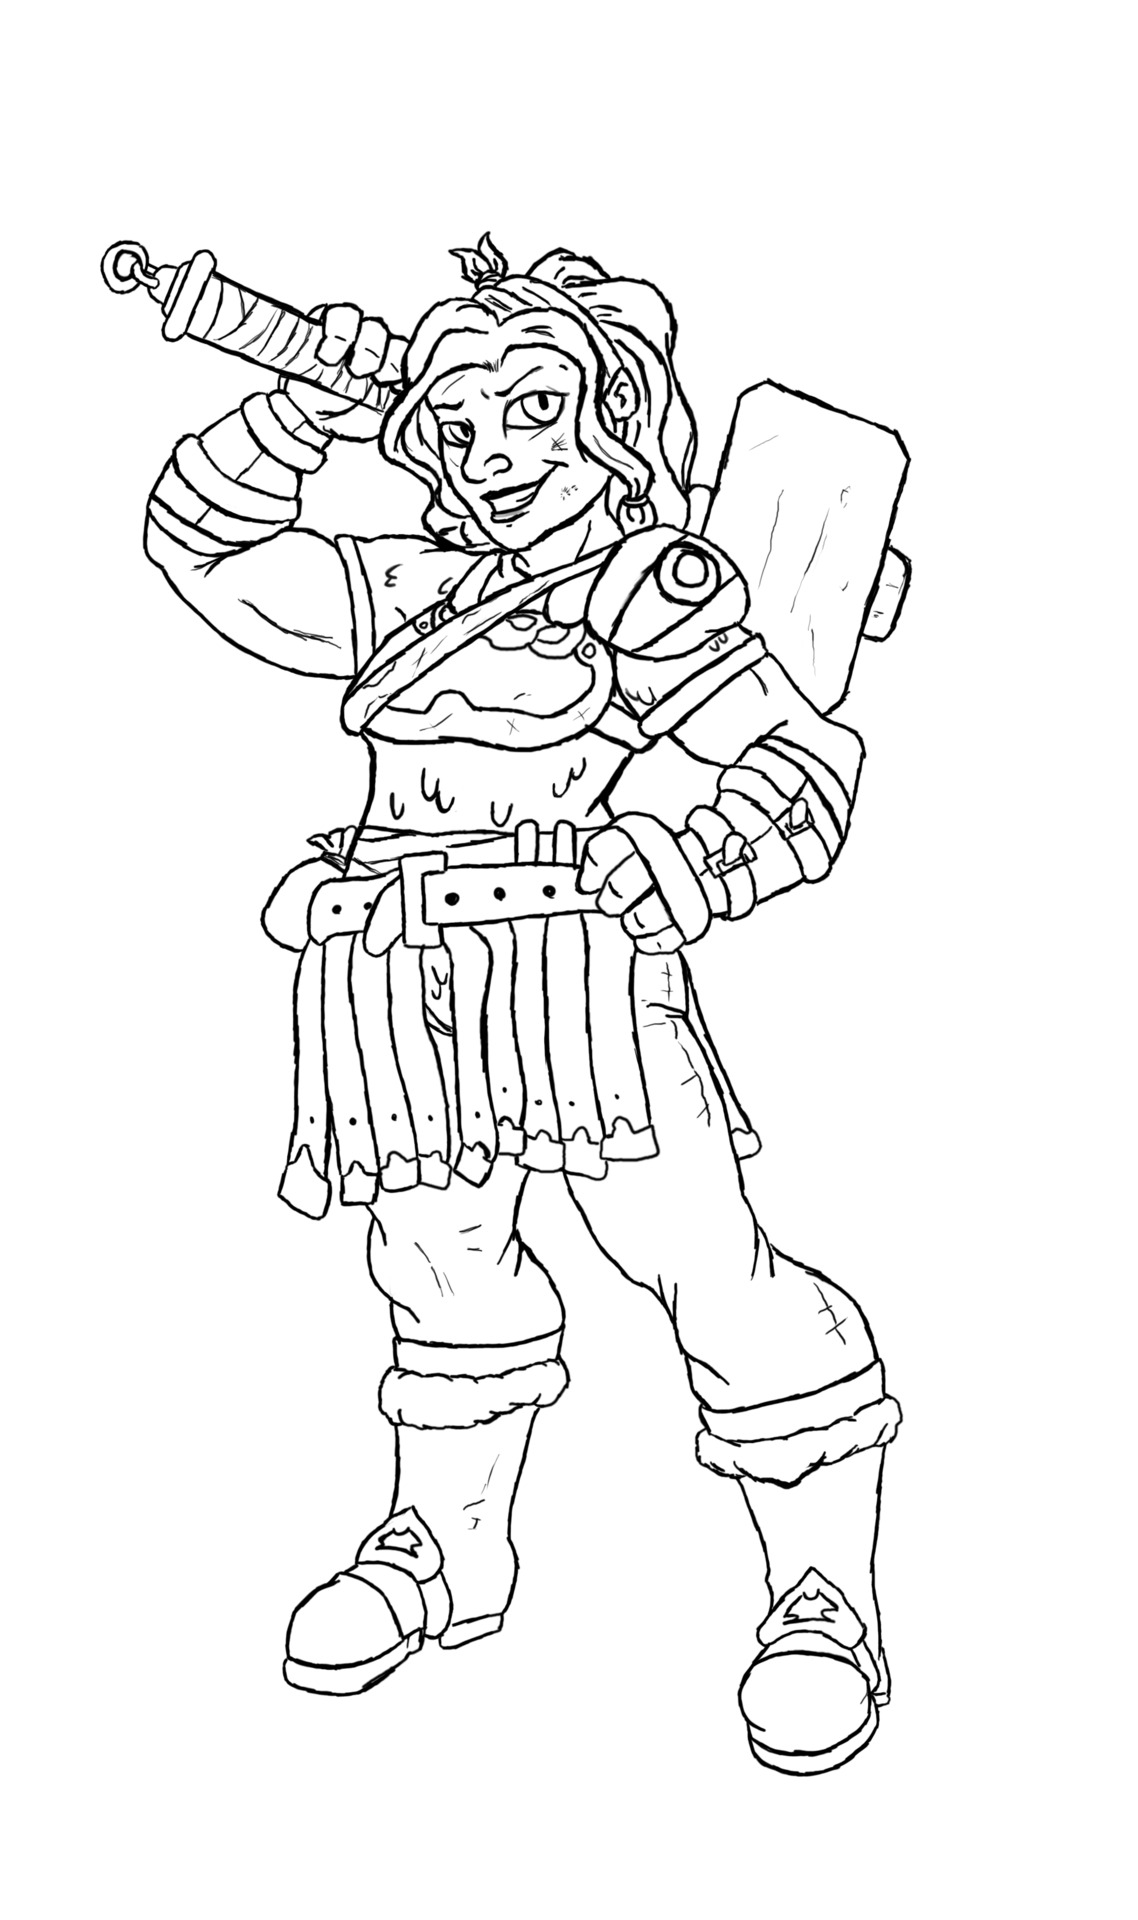 Maron the Dwarf. Total fighter class.